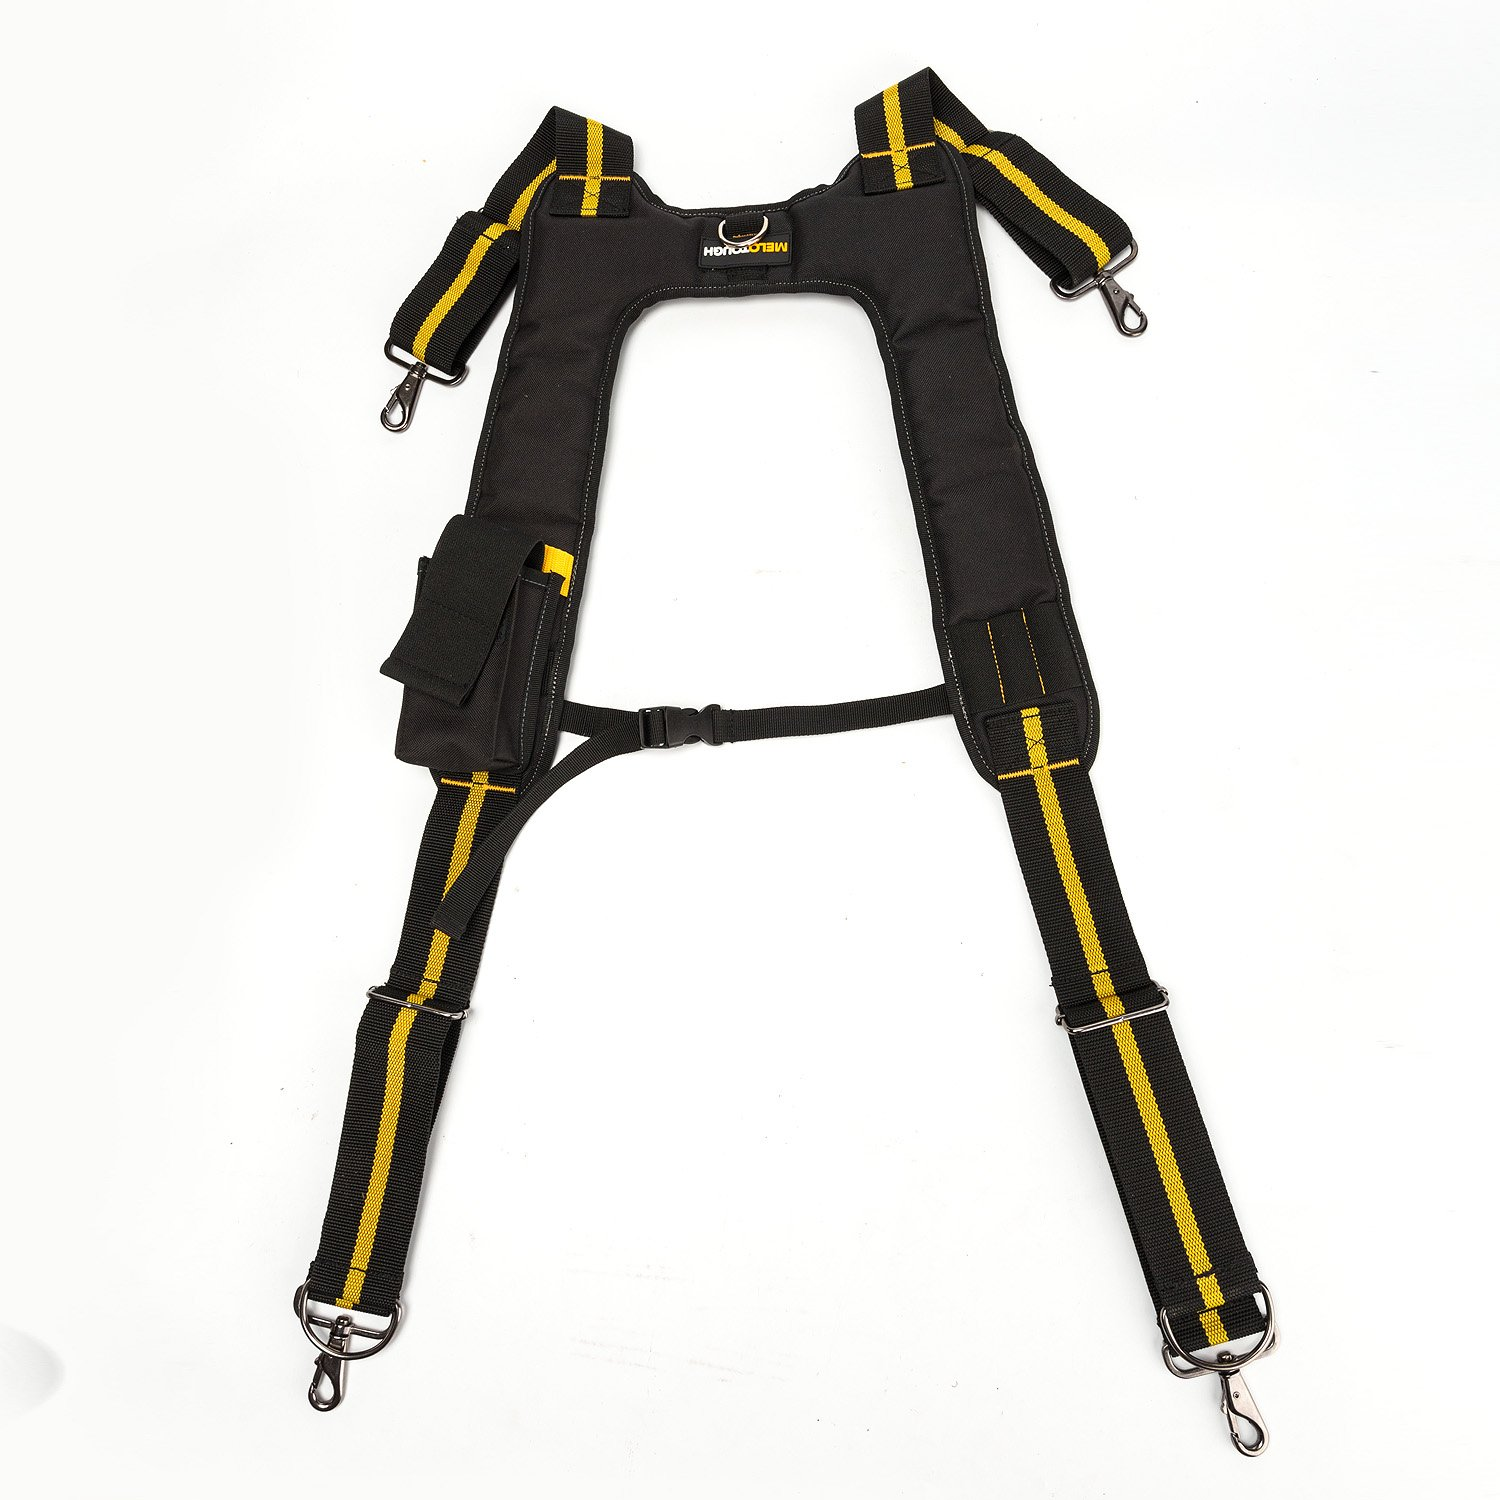 Tool Belt Suspenders|Padded Suspenders with movable phone holder Tape Holder Pencil holder,Flexible Adjustable Straps, suspenders Loop Attachments for carpenter electrician work Suspension Rig by Melo Tough (Image #3)